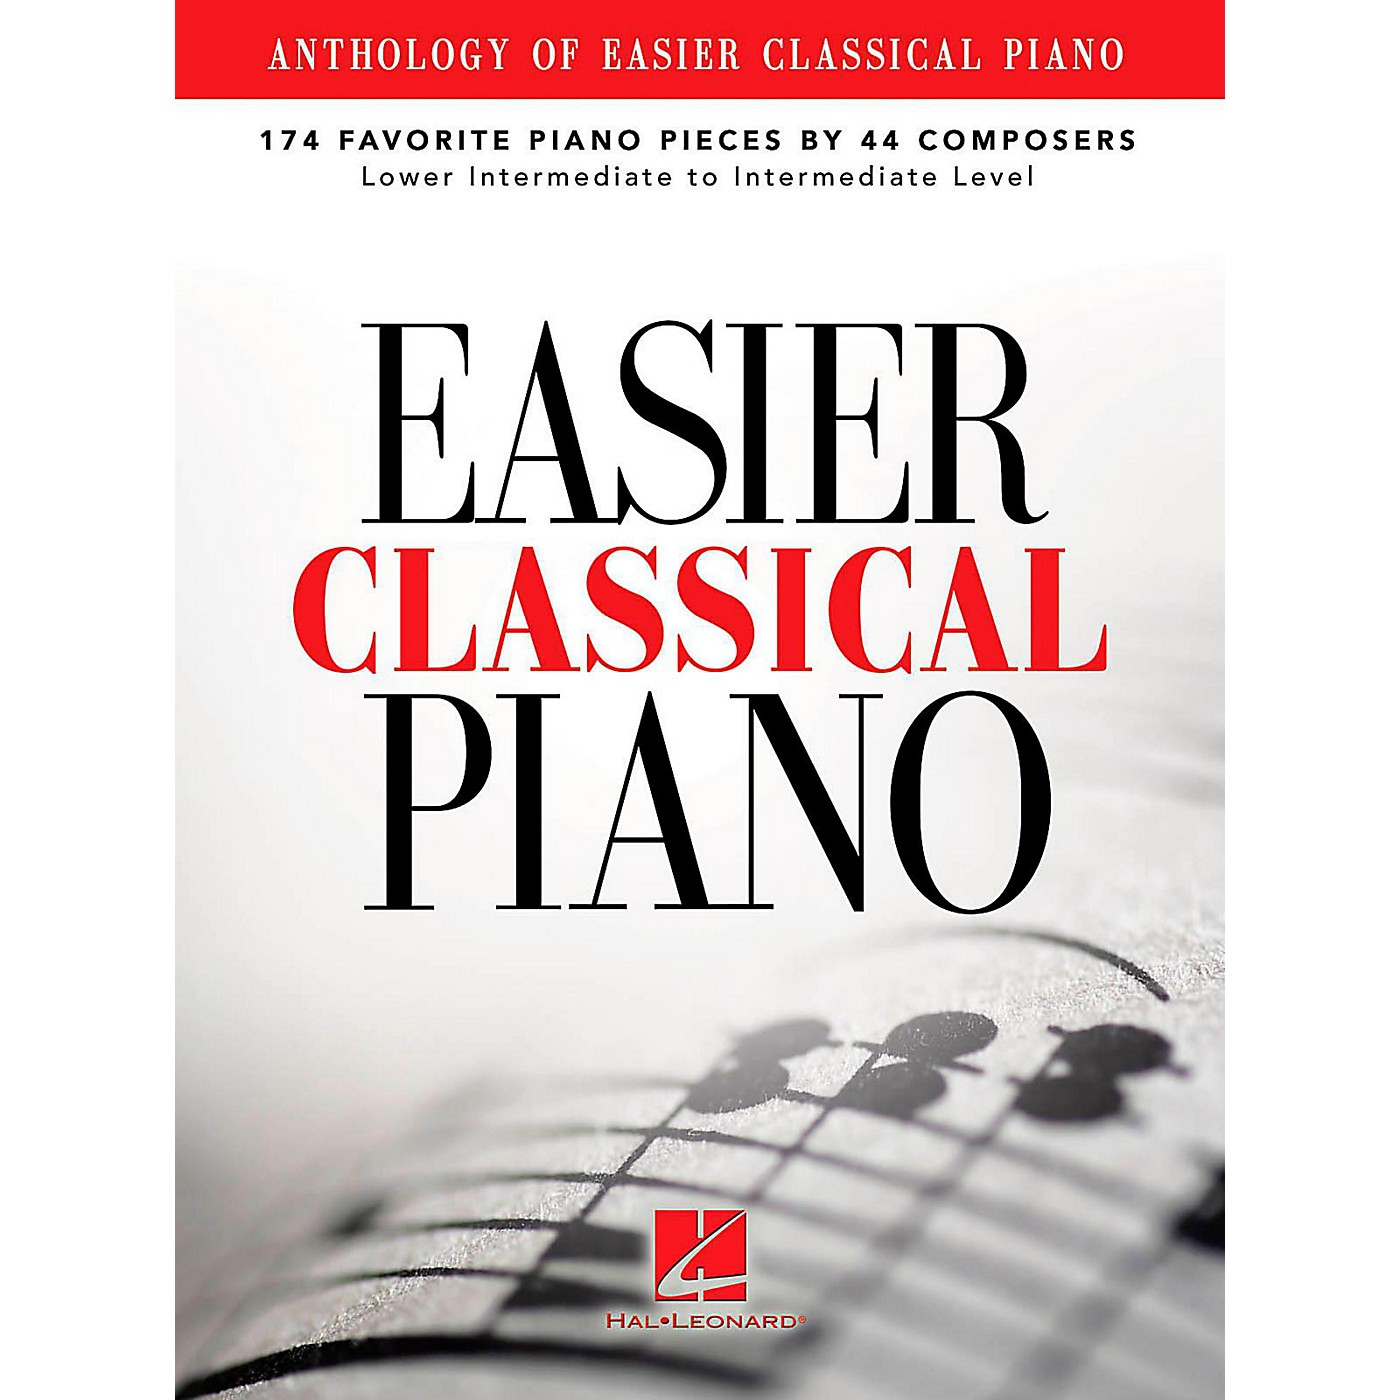 Hal Leonard Anthology Of Easier Classical Piano - 174 Favorite Pieces By 44 Composers thumbnail